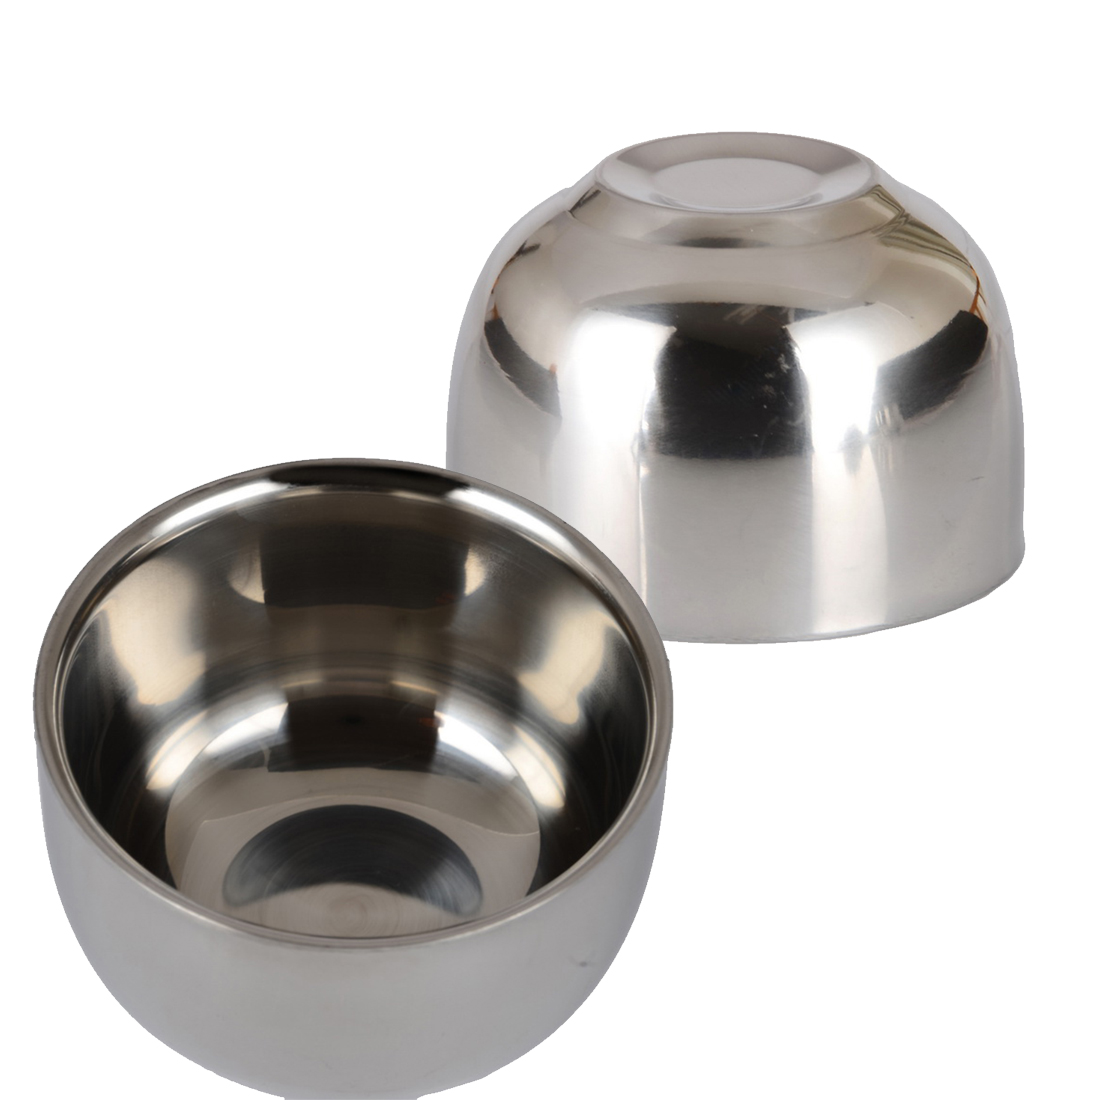 Wholesale 7.2cm Stainless Steel Nonmagnetic Cup Smooth surface Home and garden kitchen tool Kitchen accessary two layer Cup